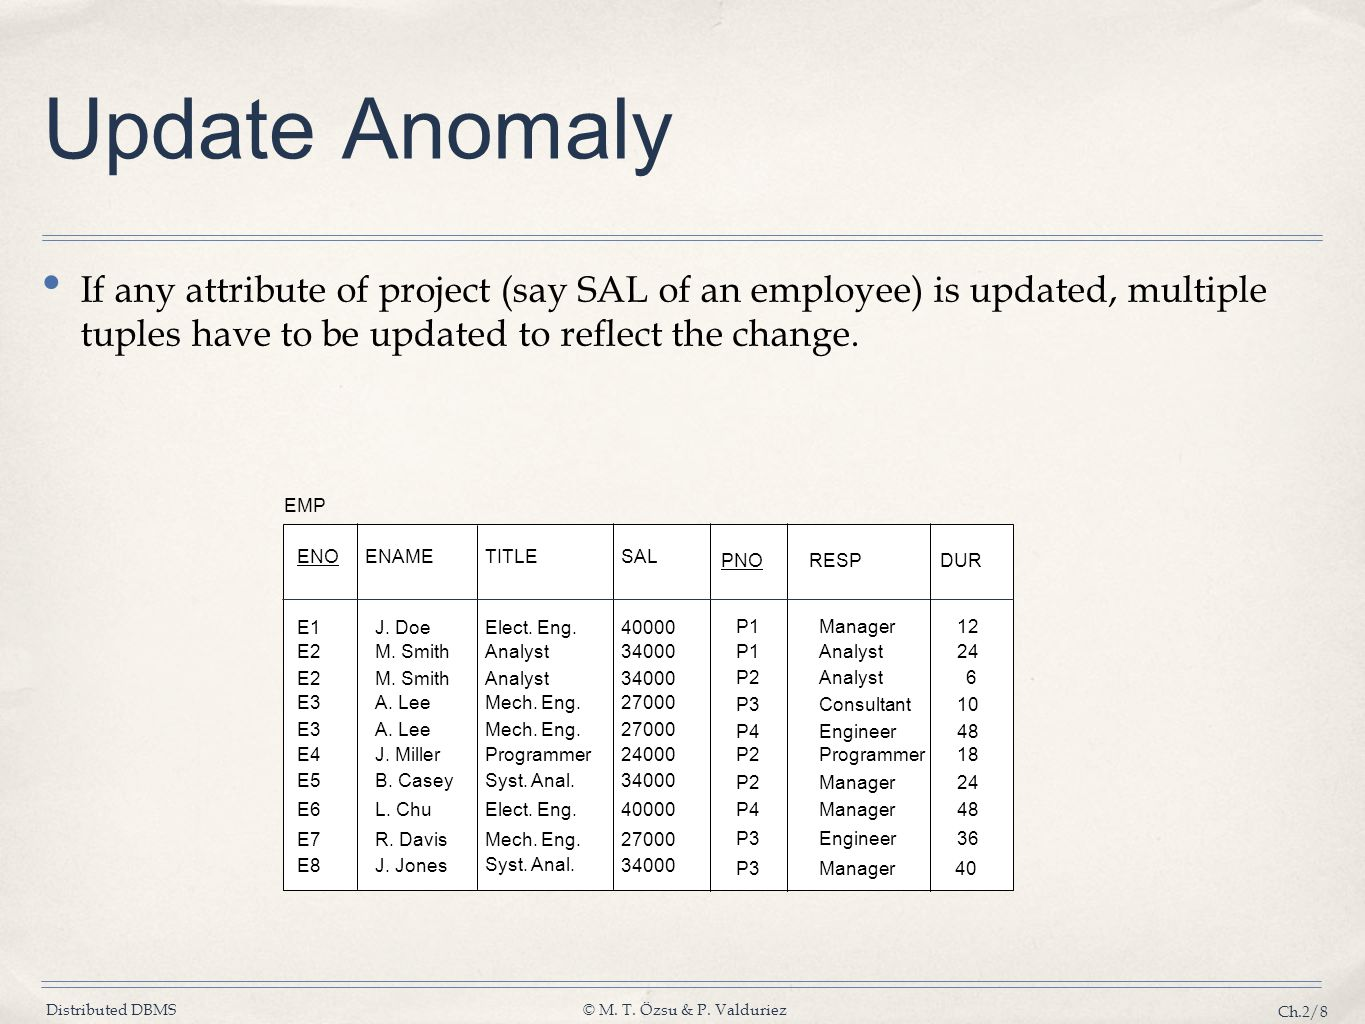 Update Anomaly If any attribute of project (say SAL of an employee) is updated, multiple tuples have to be updated to reflect the change.